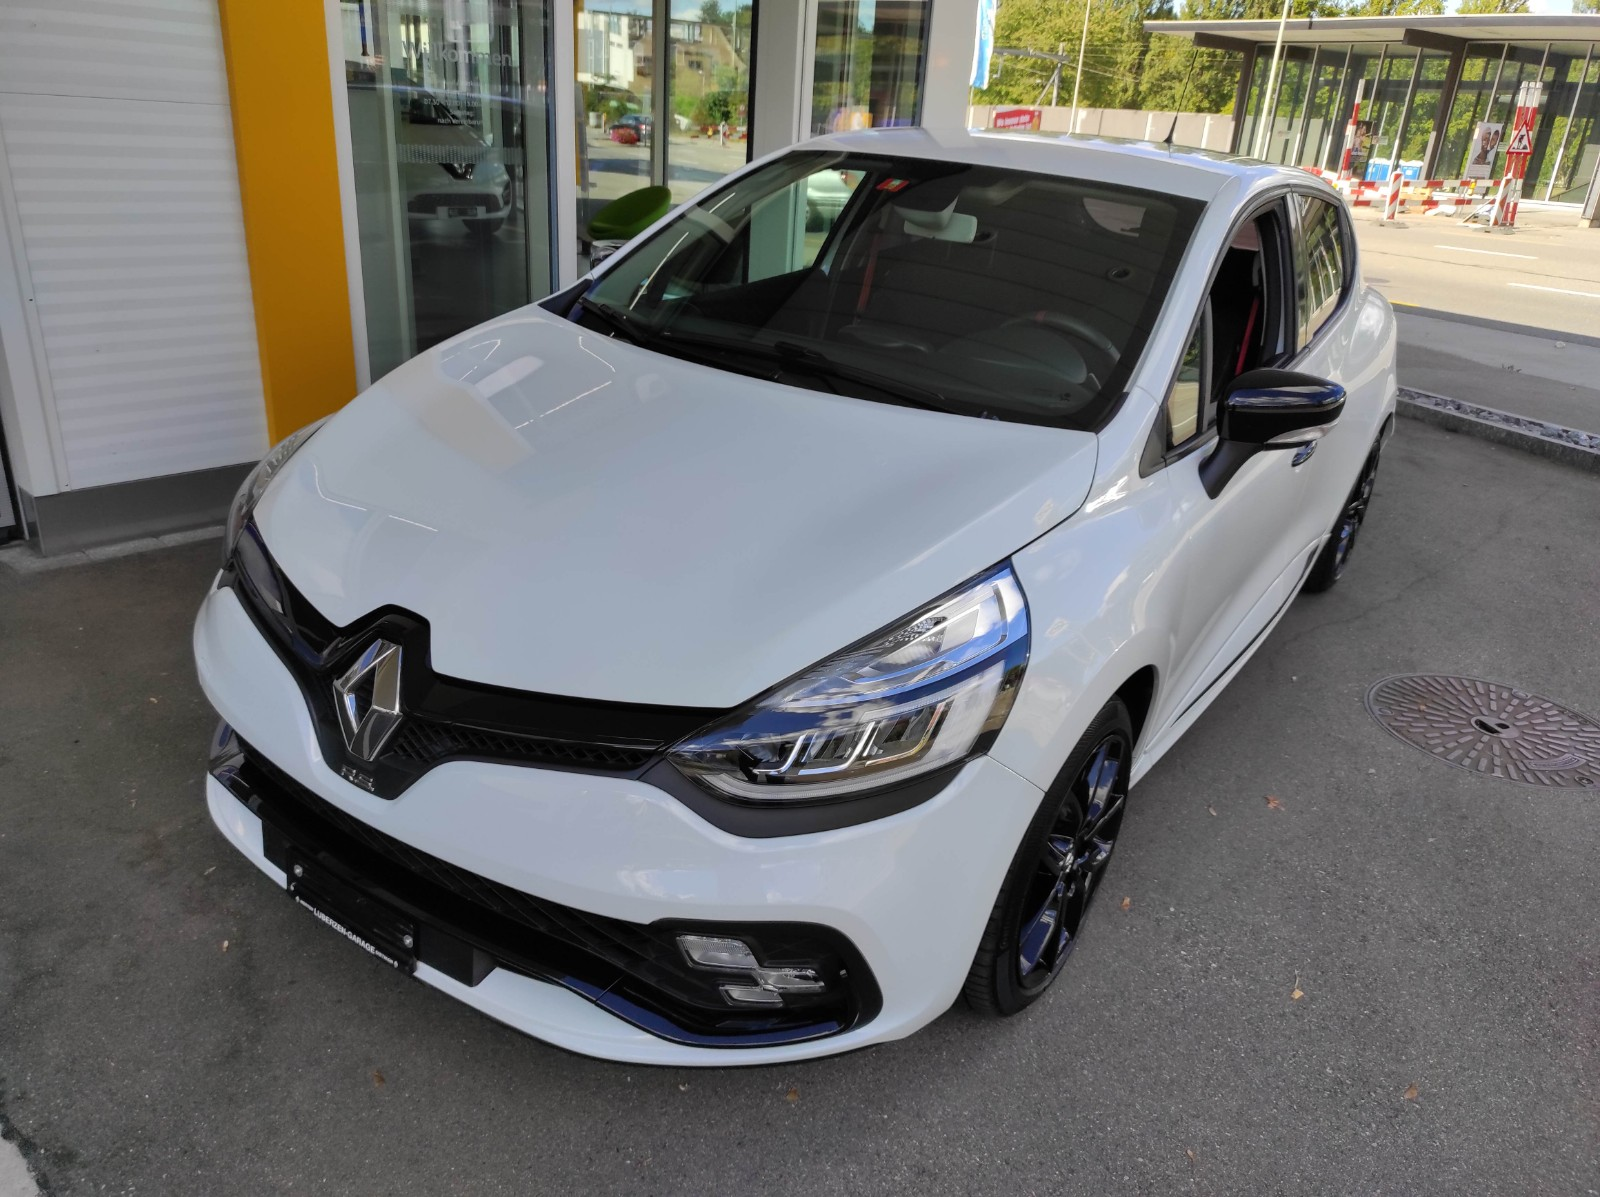 saloon Renault Clio Sport 1.6 T RS 200 S/S